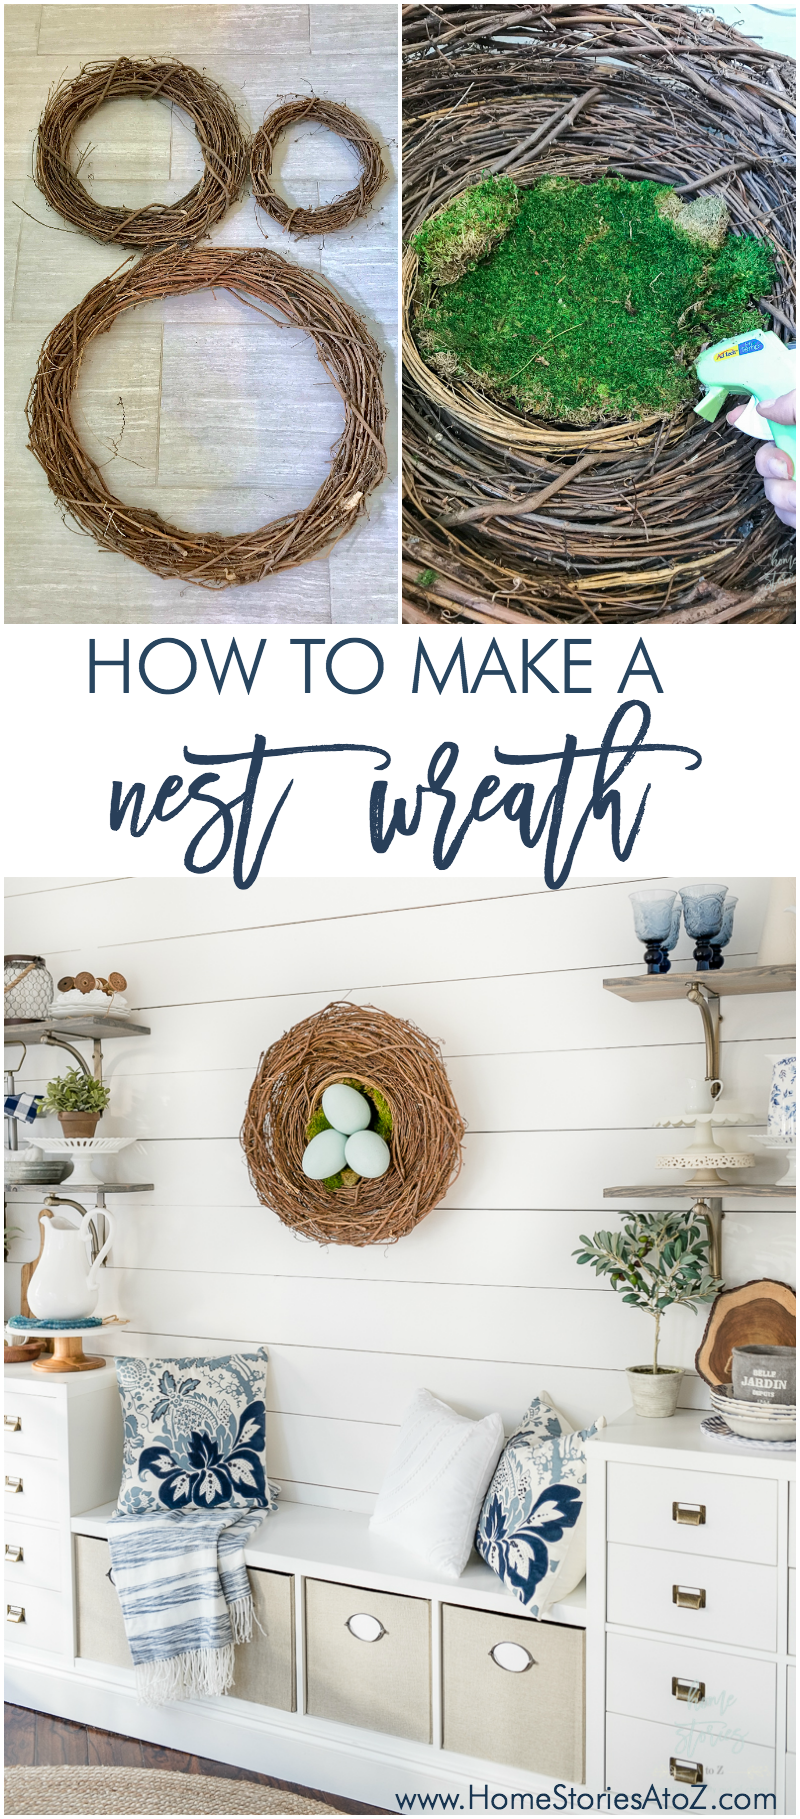 DIY Wreath Nest Wreath Easter Wreath